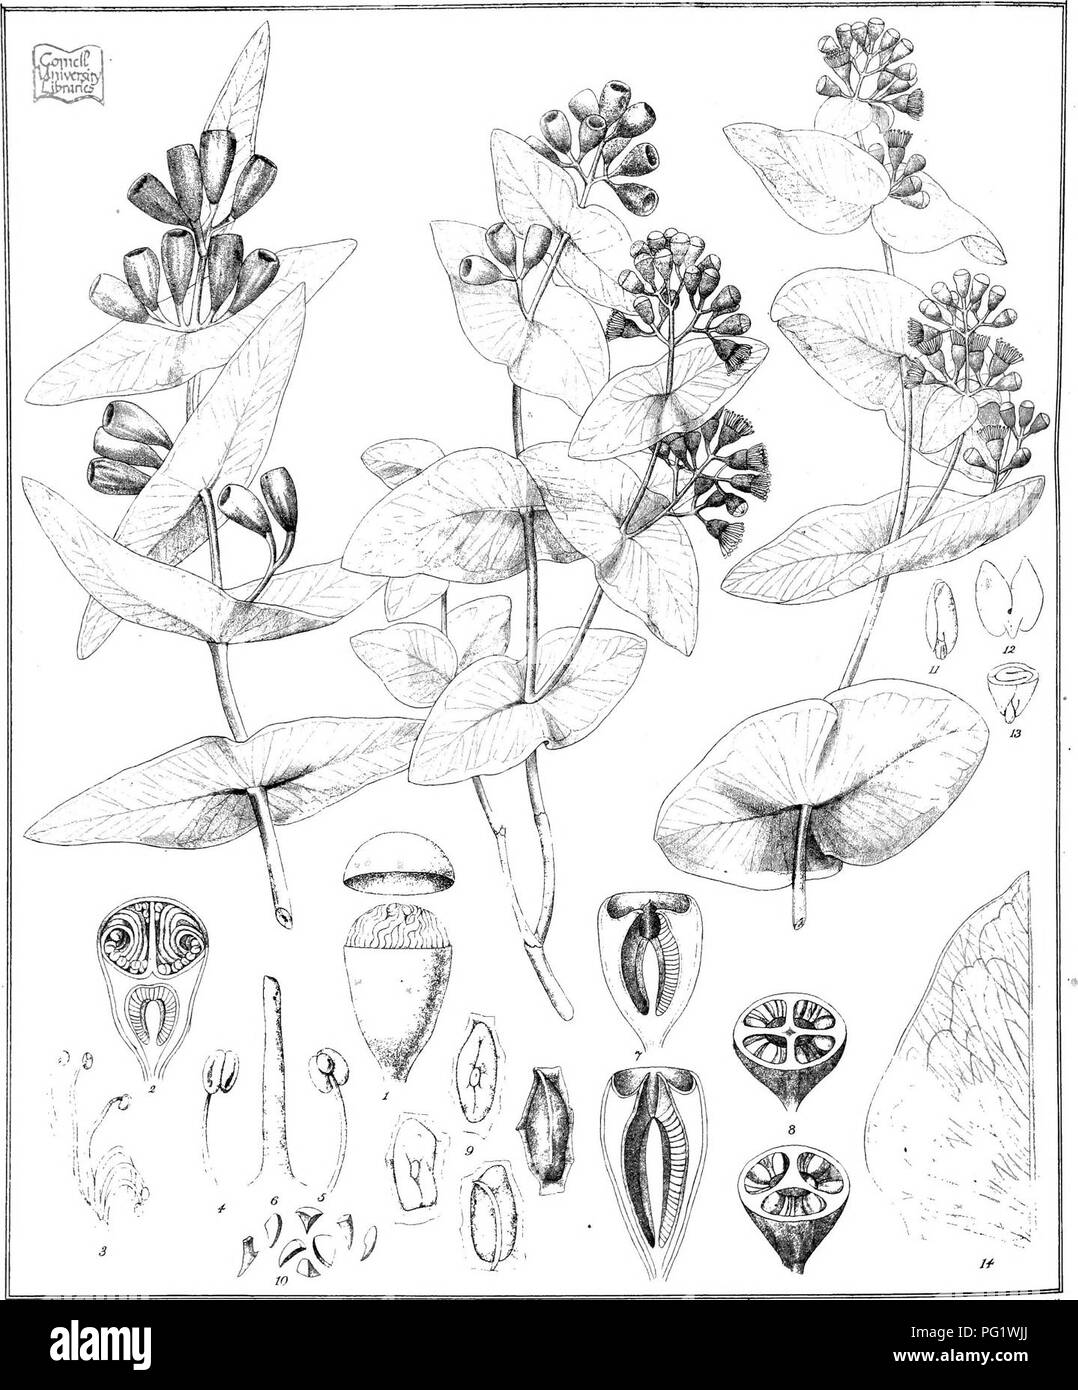 . Eucalyptographia. A descriptive atlas of the eucalypts of Australia and the adjoining islands;. Eucalyptus; Botany. T.ii deJ C Tr;:iel &. C? Lilh F. vM. direxit - Sleam liOio Sov Pnnbng Office Melb lirfjjpiiig luiBjpll'lk, FfM. Please note that these images are extracted from scanned page images that may have been digitally enhanced for readability - coloration and appearance of these illustrations may not perfectly resemble the original work.. Mueller, Ferdinand von, 1825-1896. Melbourne, J. Ferres, Govt. Print; [etc. ,etc. ] - Stock Image